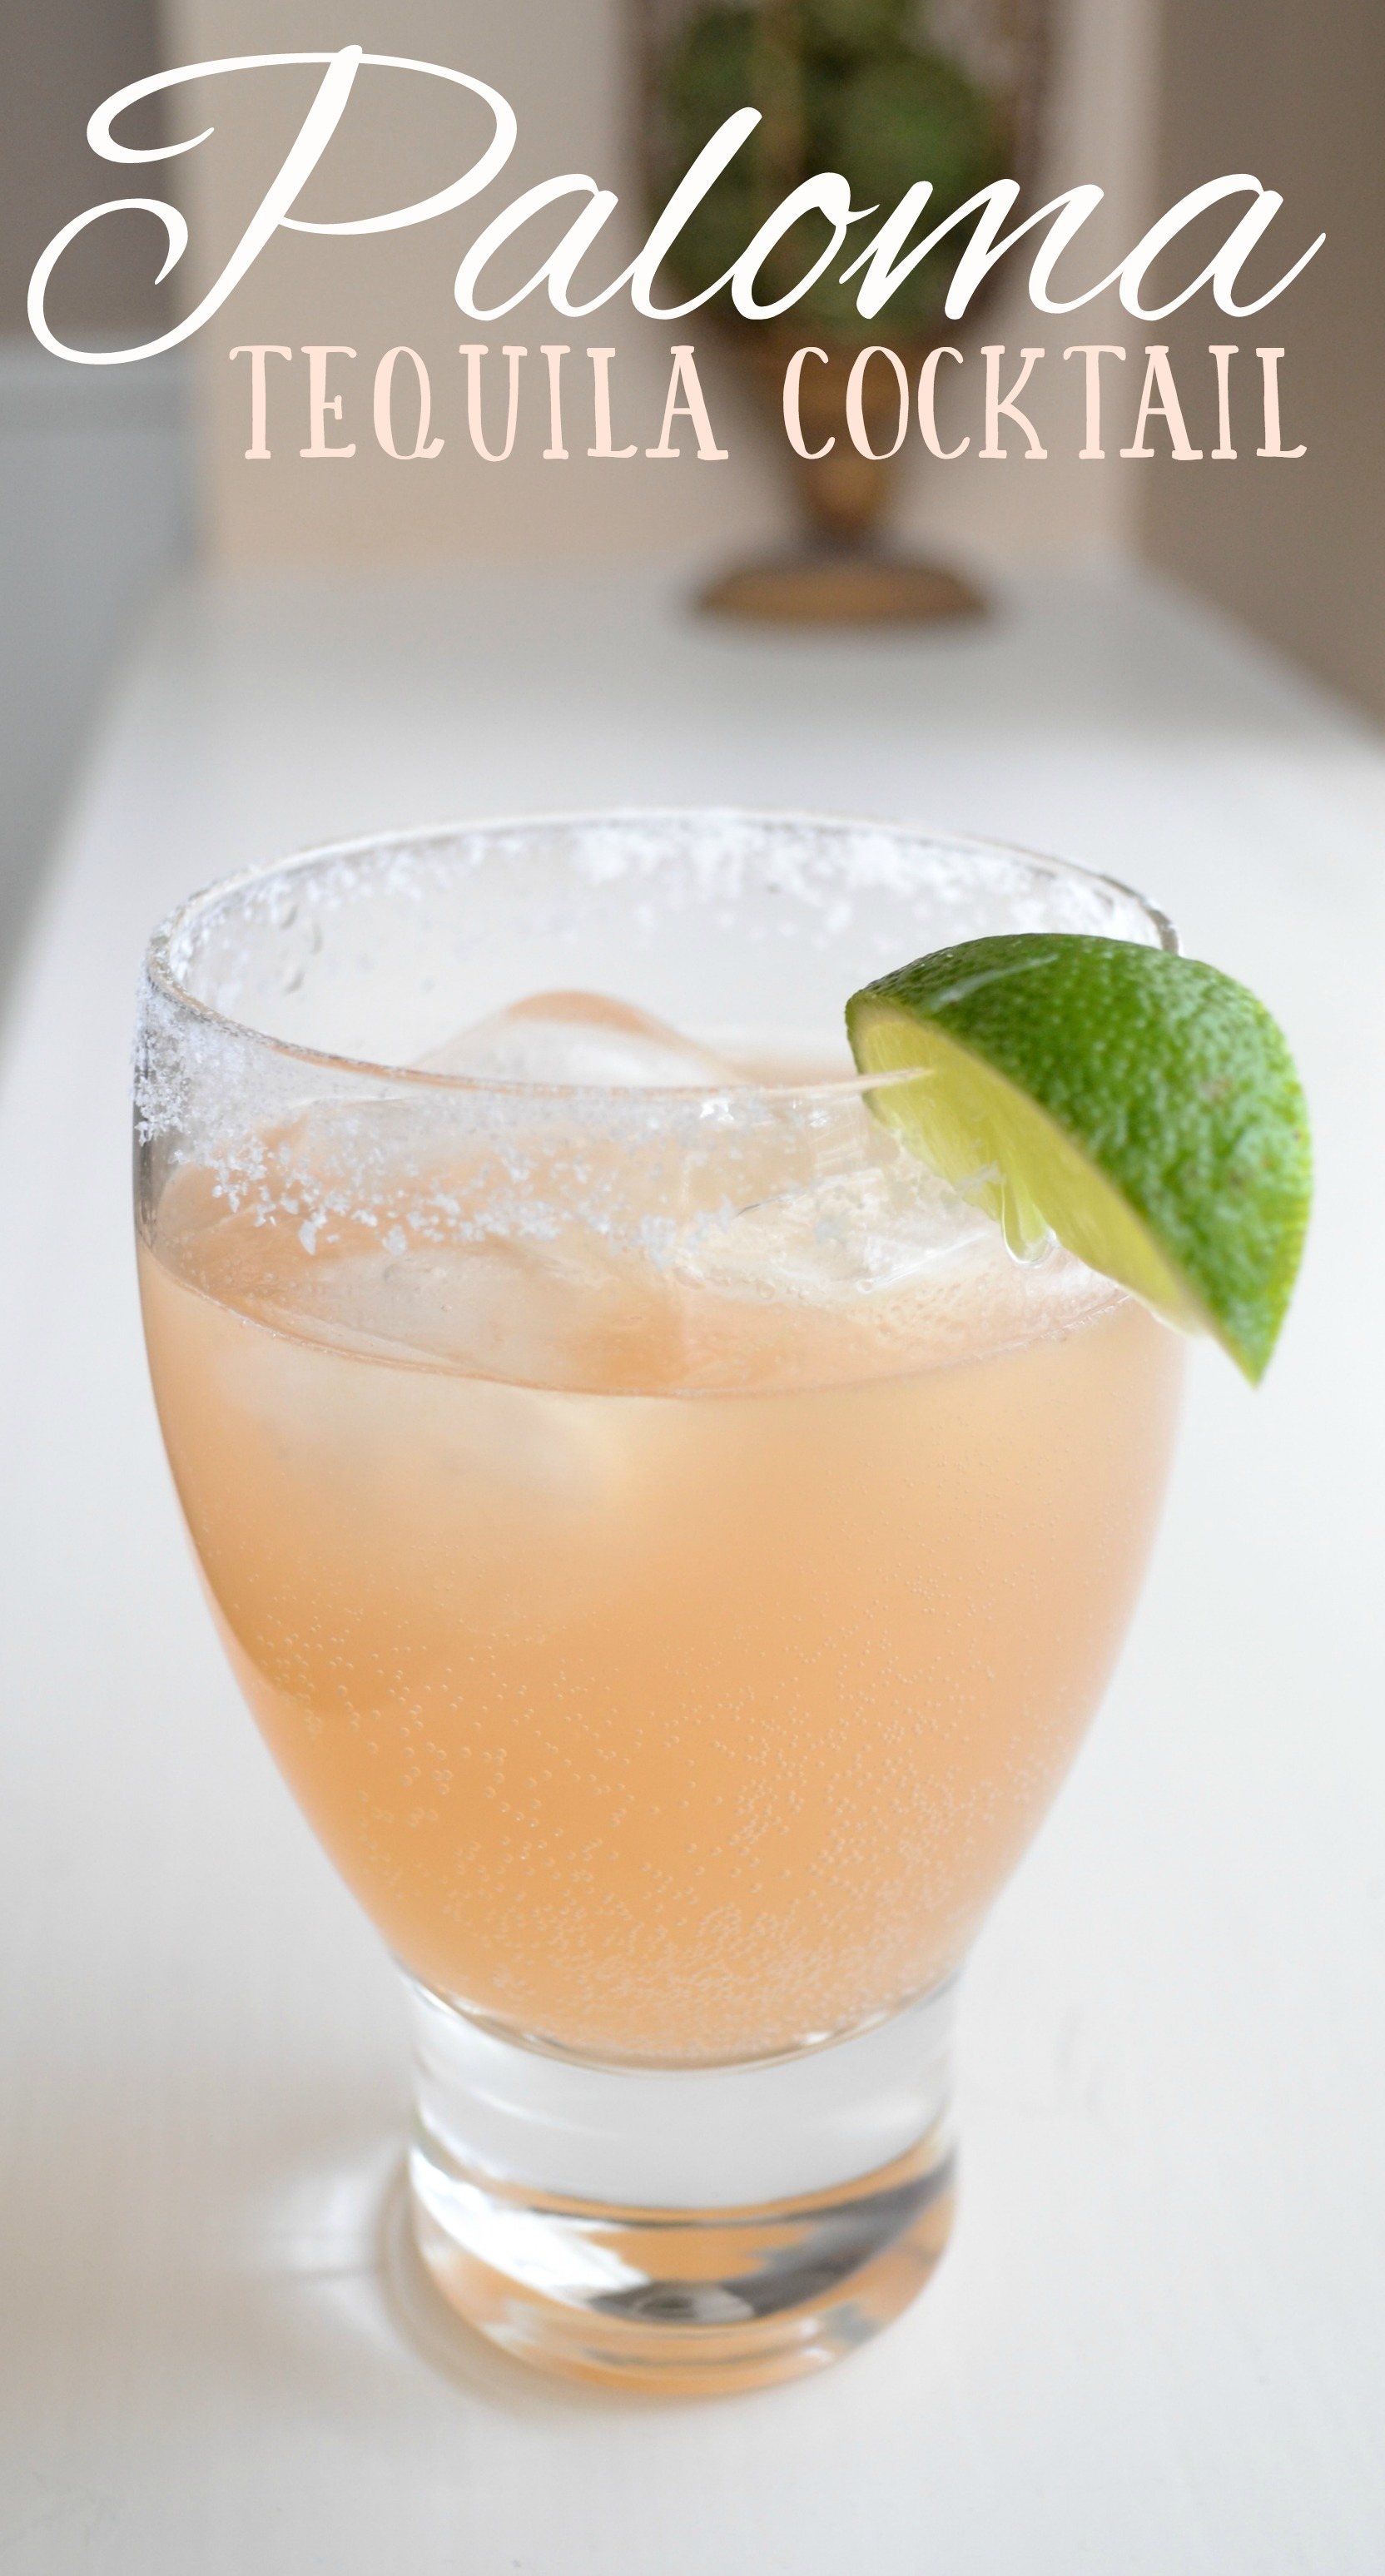 If you like margaritas, you will love palomas. Combine tequila, italian soda, and fresh lime juice.